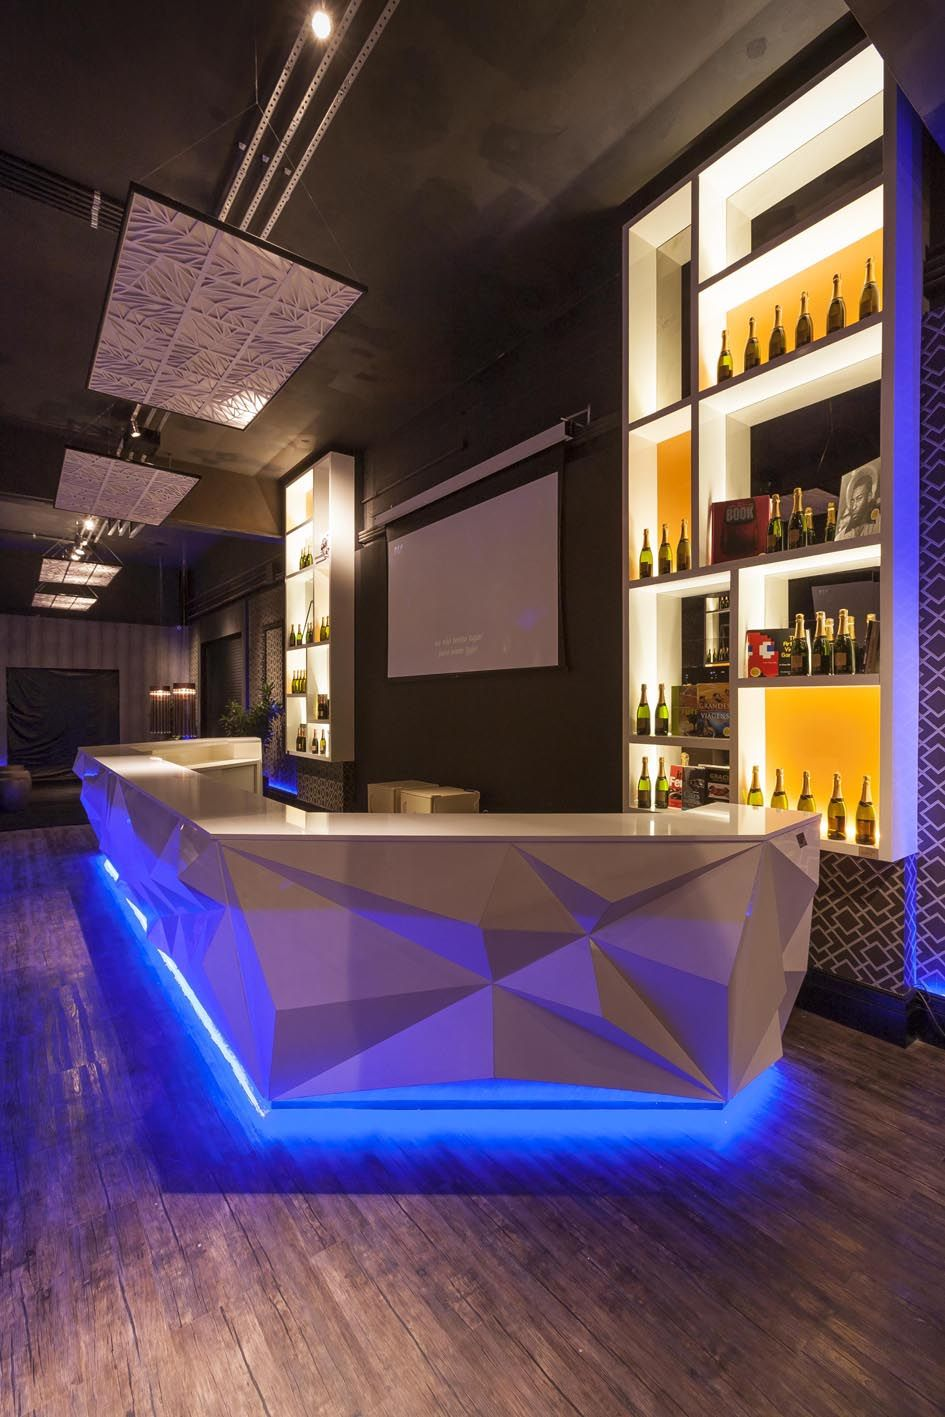 Bar lounge interior design architecture pinterest for Bar interior design